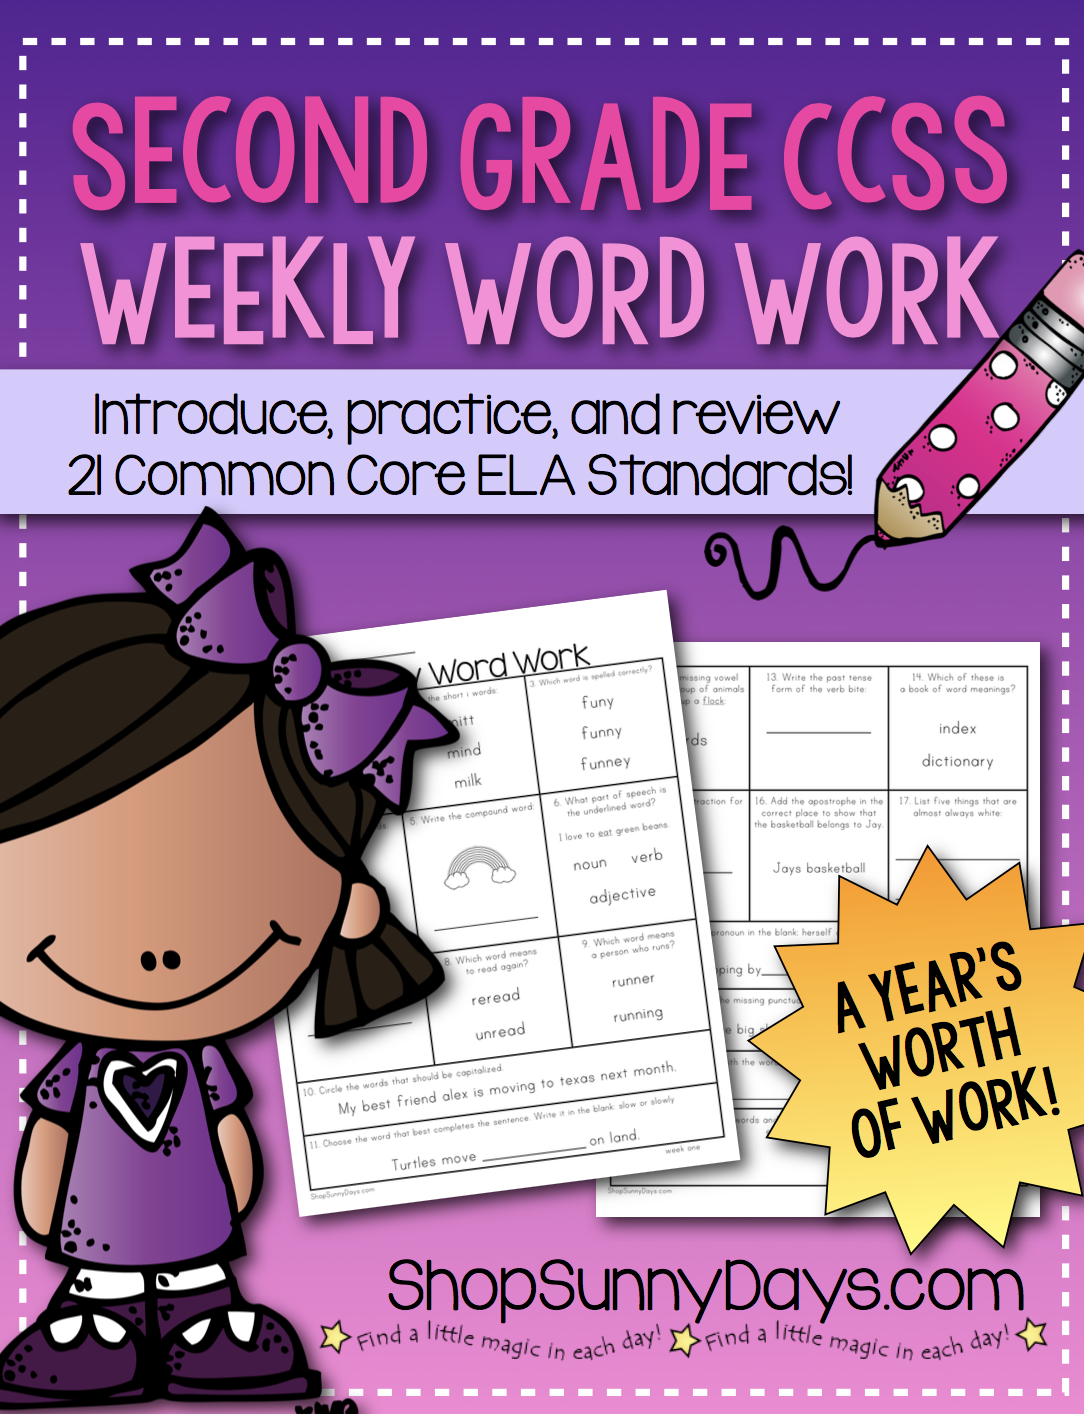 Second Grade Weekly Word Work